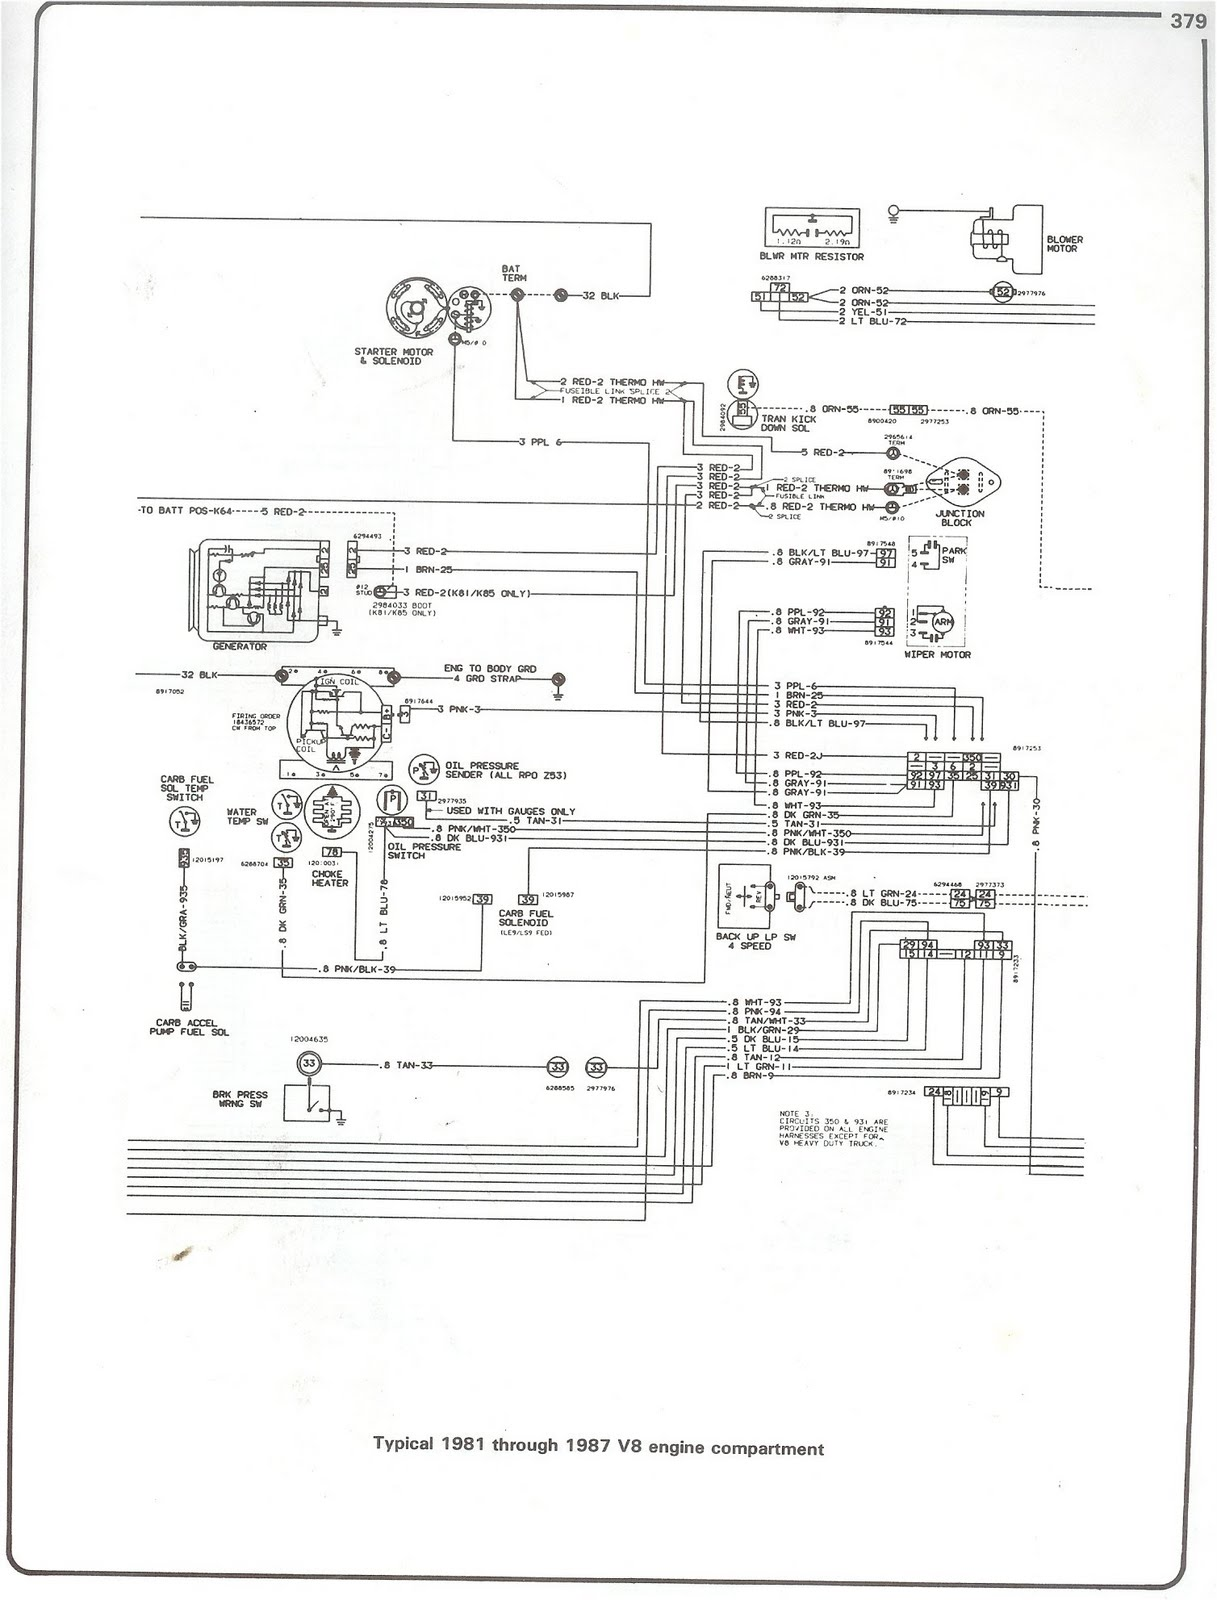 1981 chevy truck ignition diagram electrical drawing wiring diagram \u2022 1969 chevy truck wiring diagram 1981 chevy silverado wiring harness example electrical wiring rh cranejapan co chevy factory stereo wiring diagrams 1981 chevy truck headlight wiring